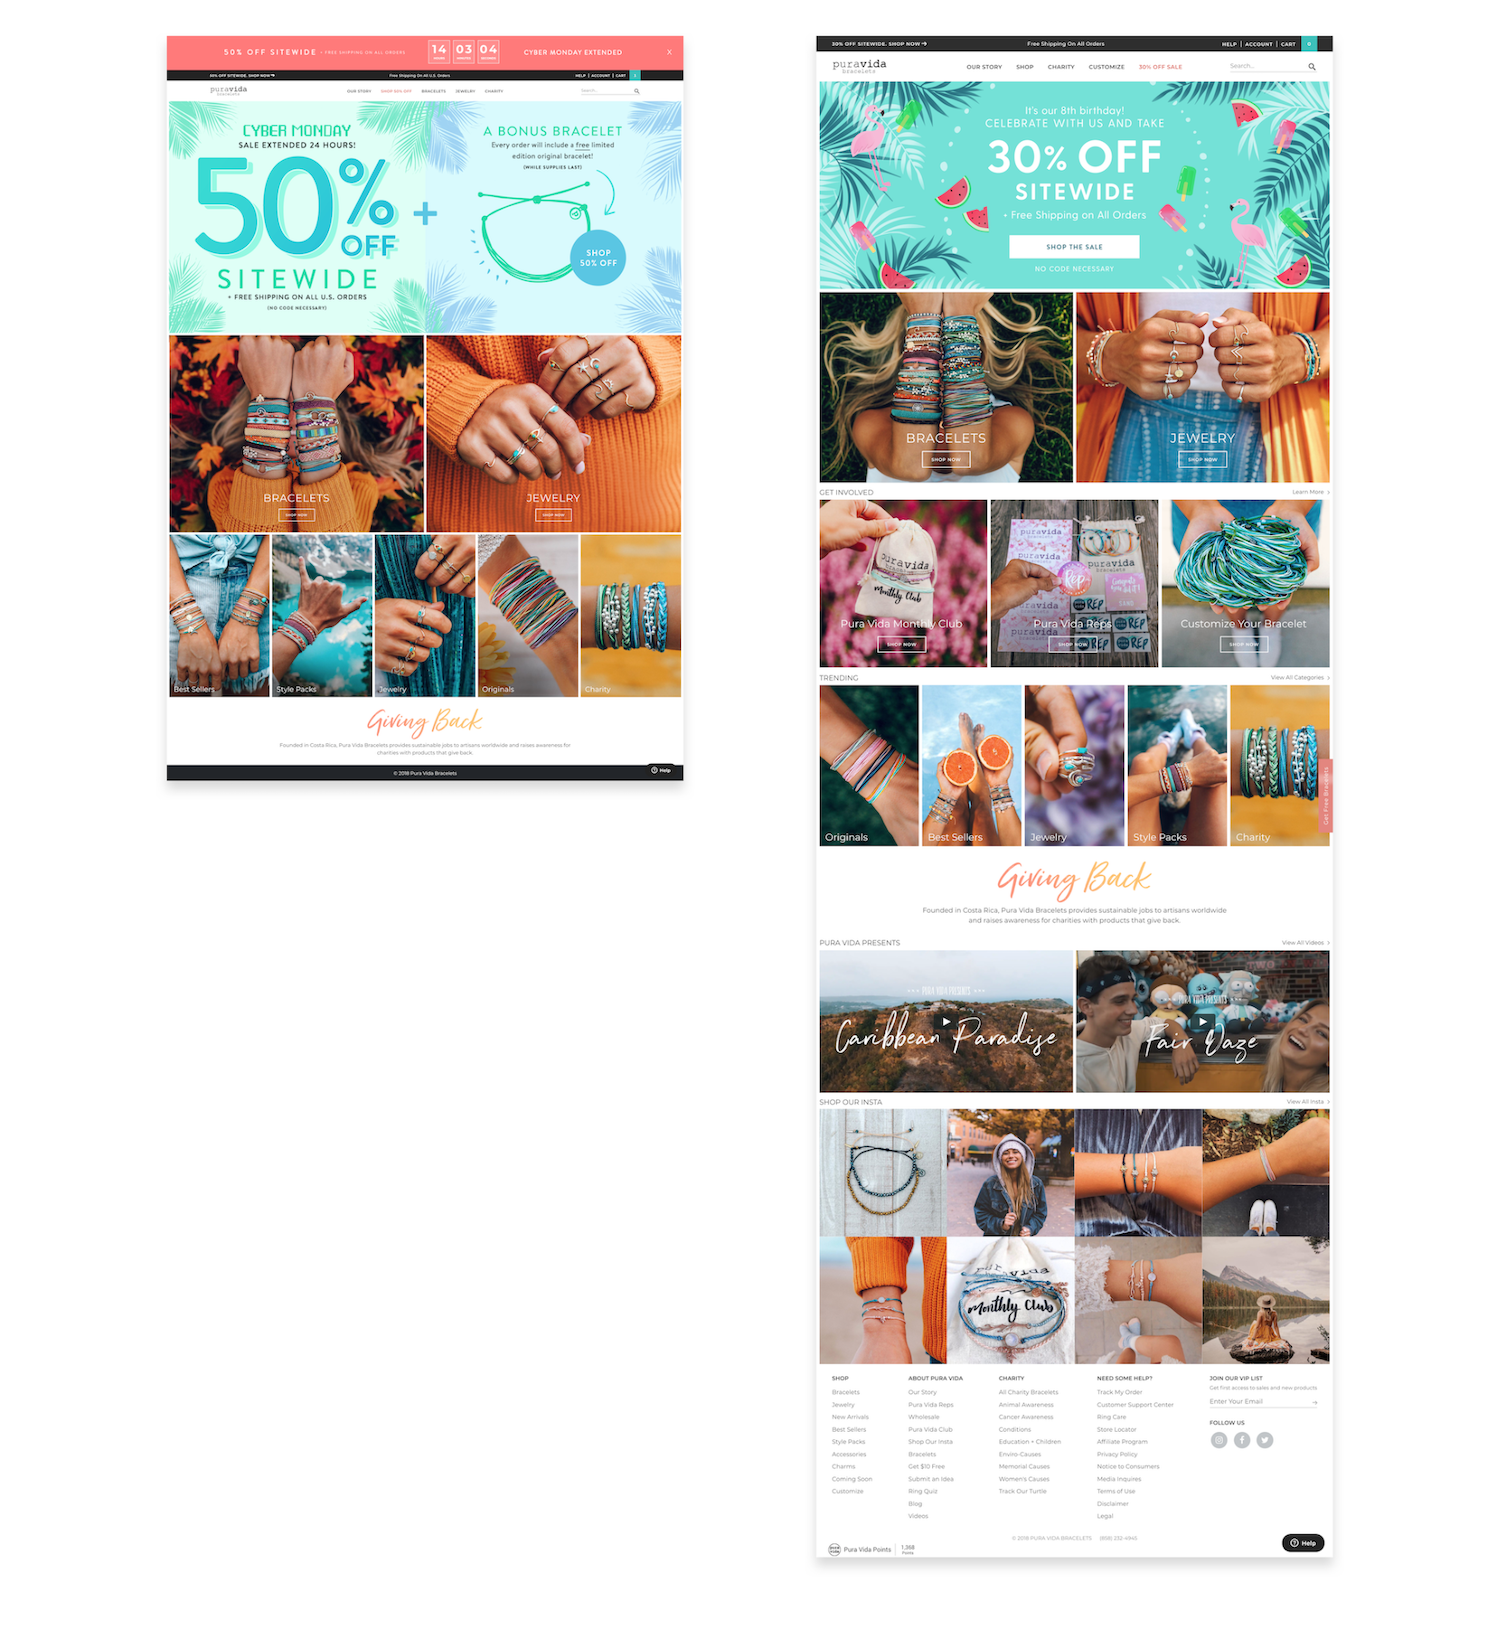 Pura Vida simplified its holiday ecommerce homepage